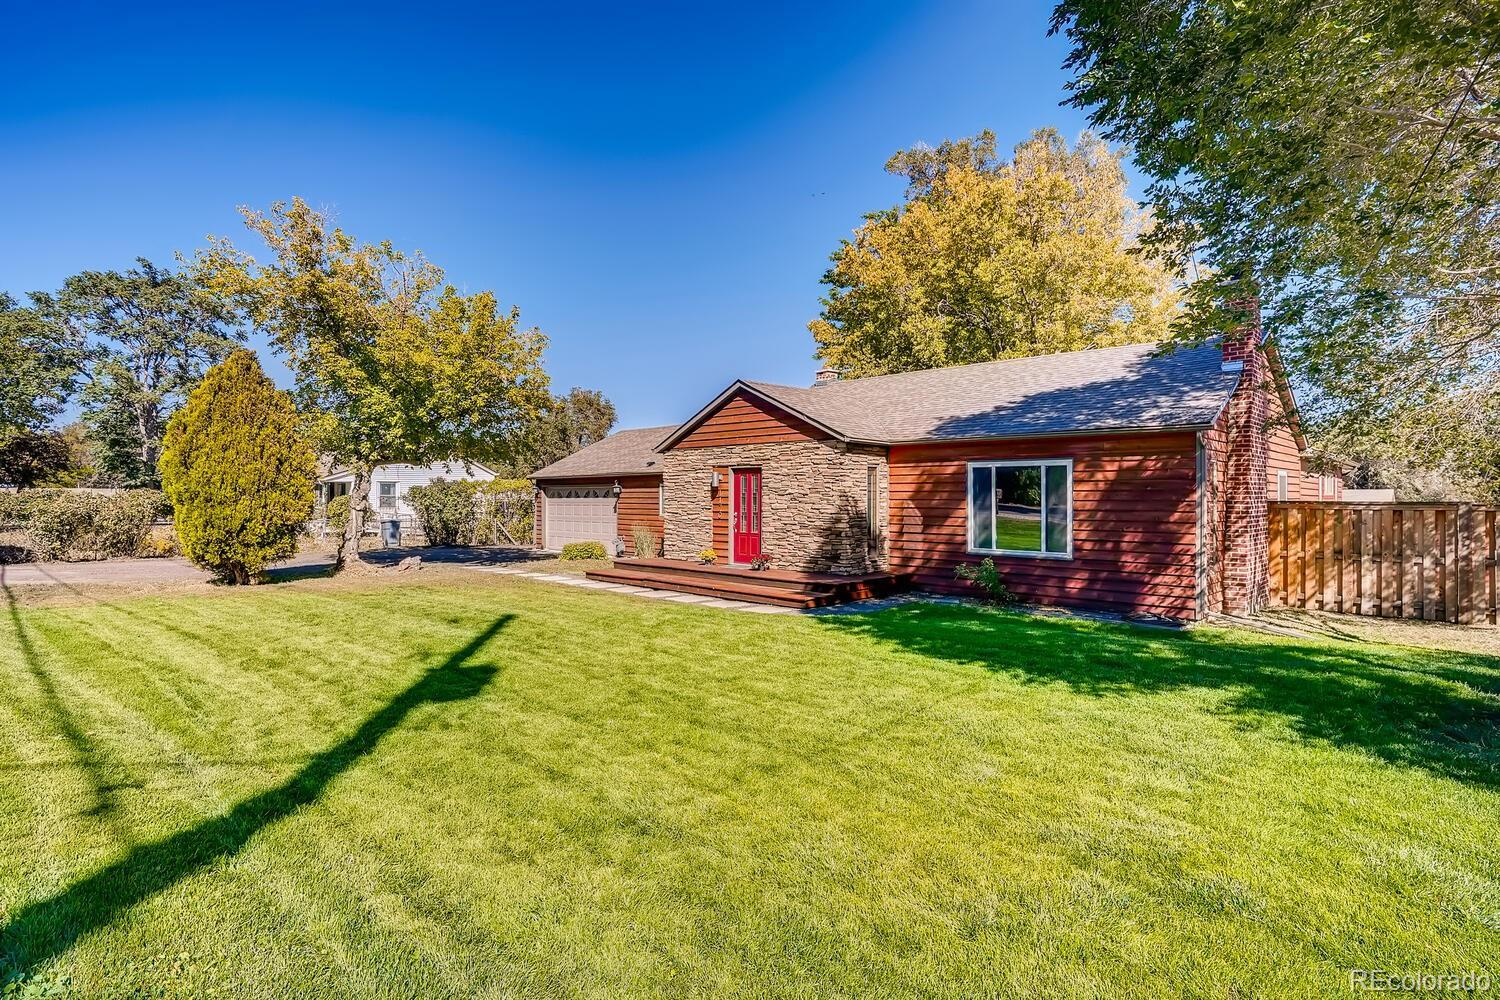 1170 Garrison Street, Lakewood, CO 80215 - #: 2479822